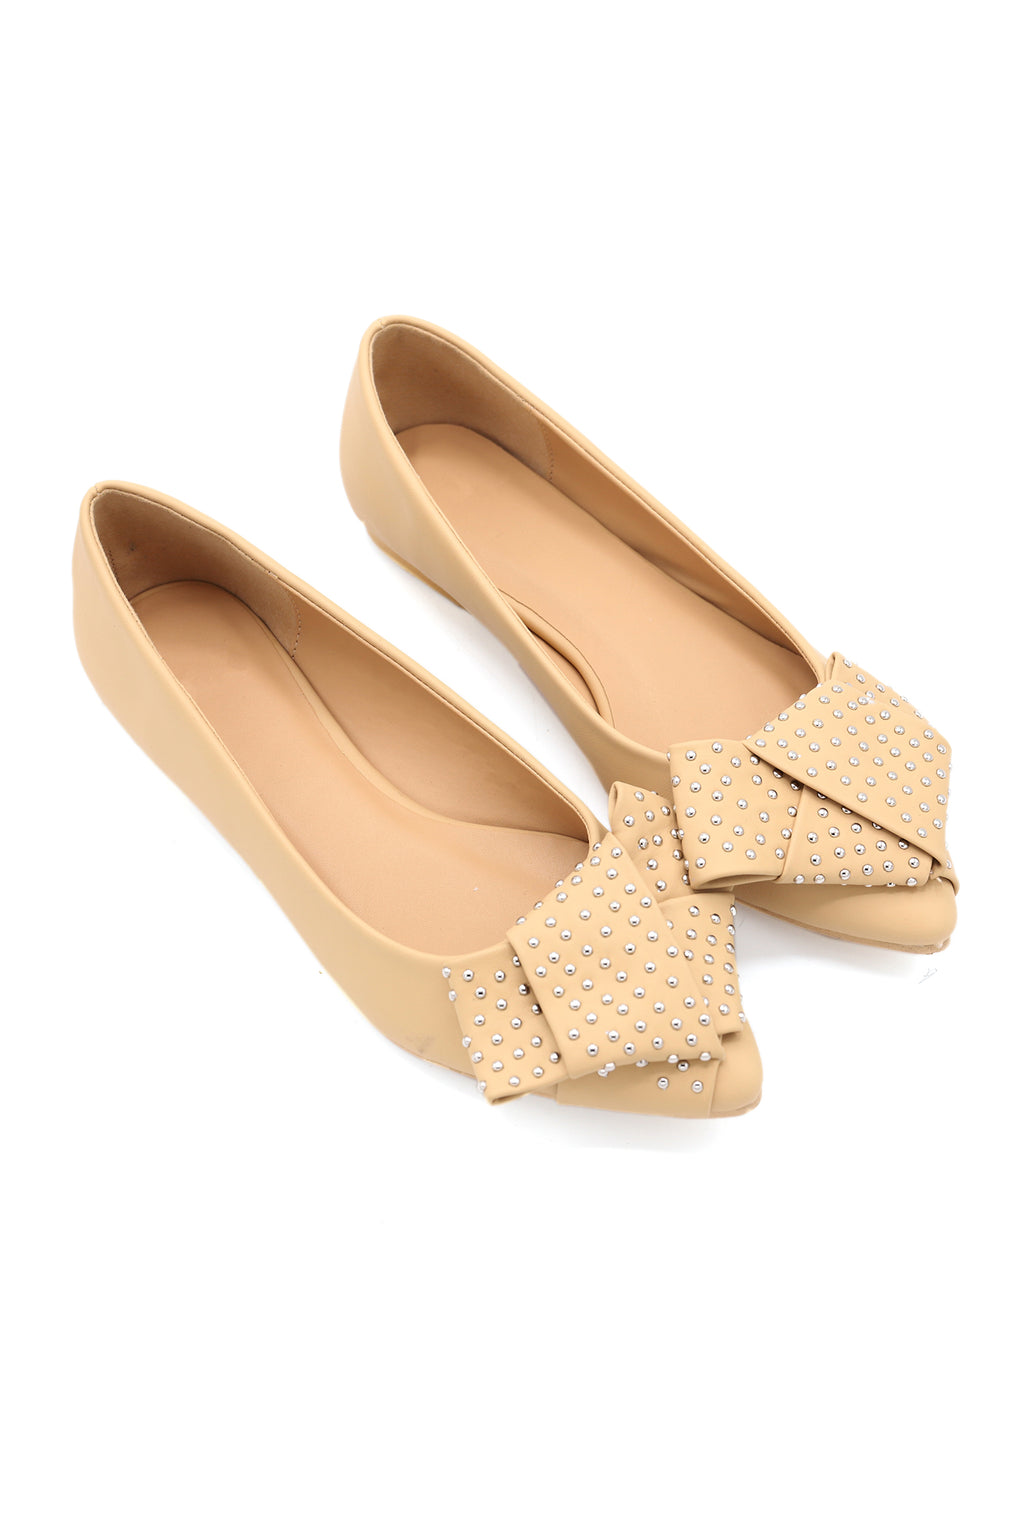 STUDDED PUMPS -BEIGE